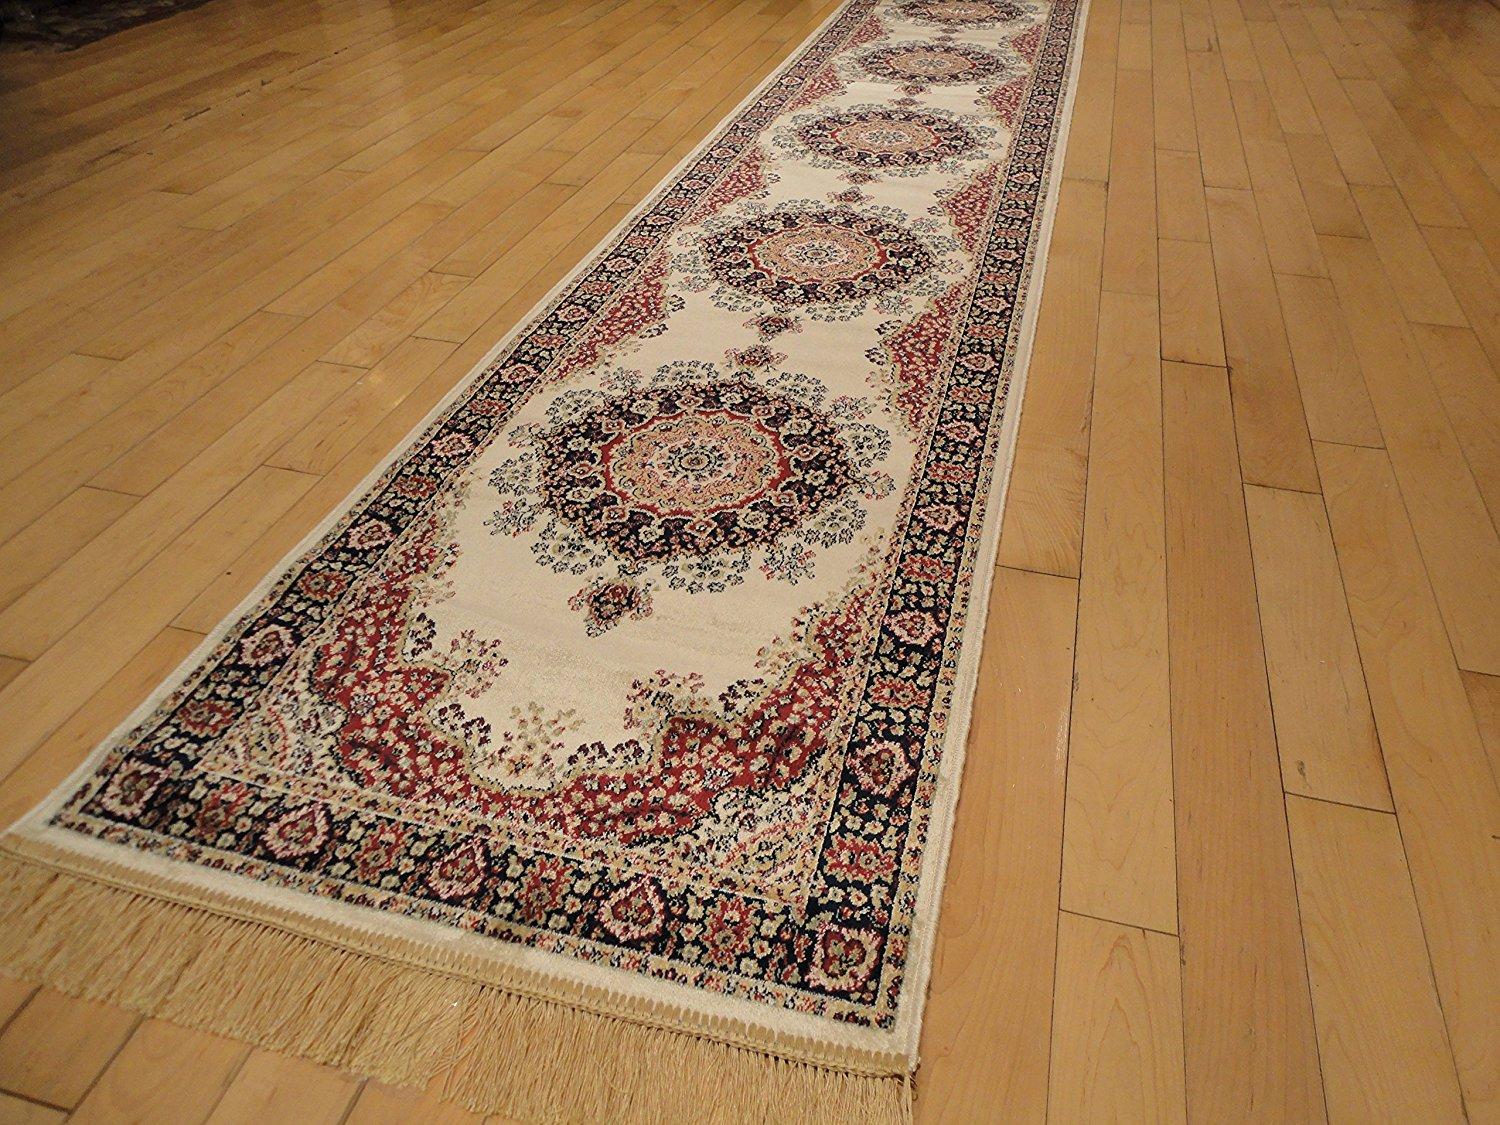 Cheap Hallway Rug Runners Find Hallway Rug Runners Deals On Line At